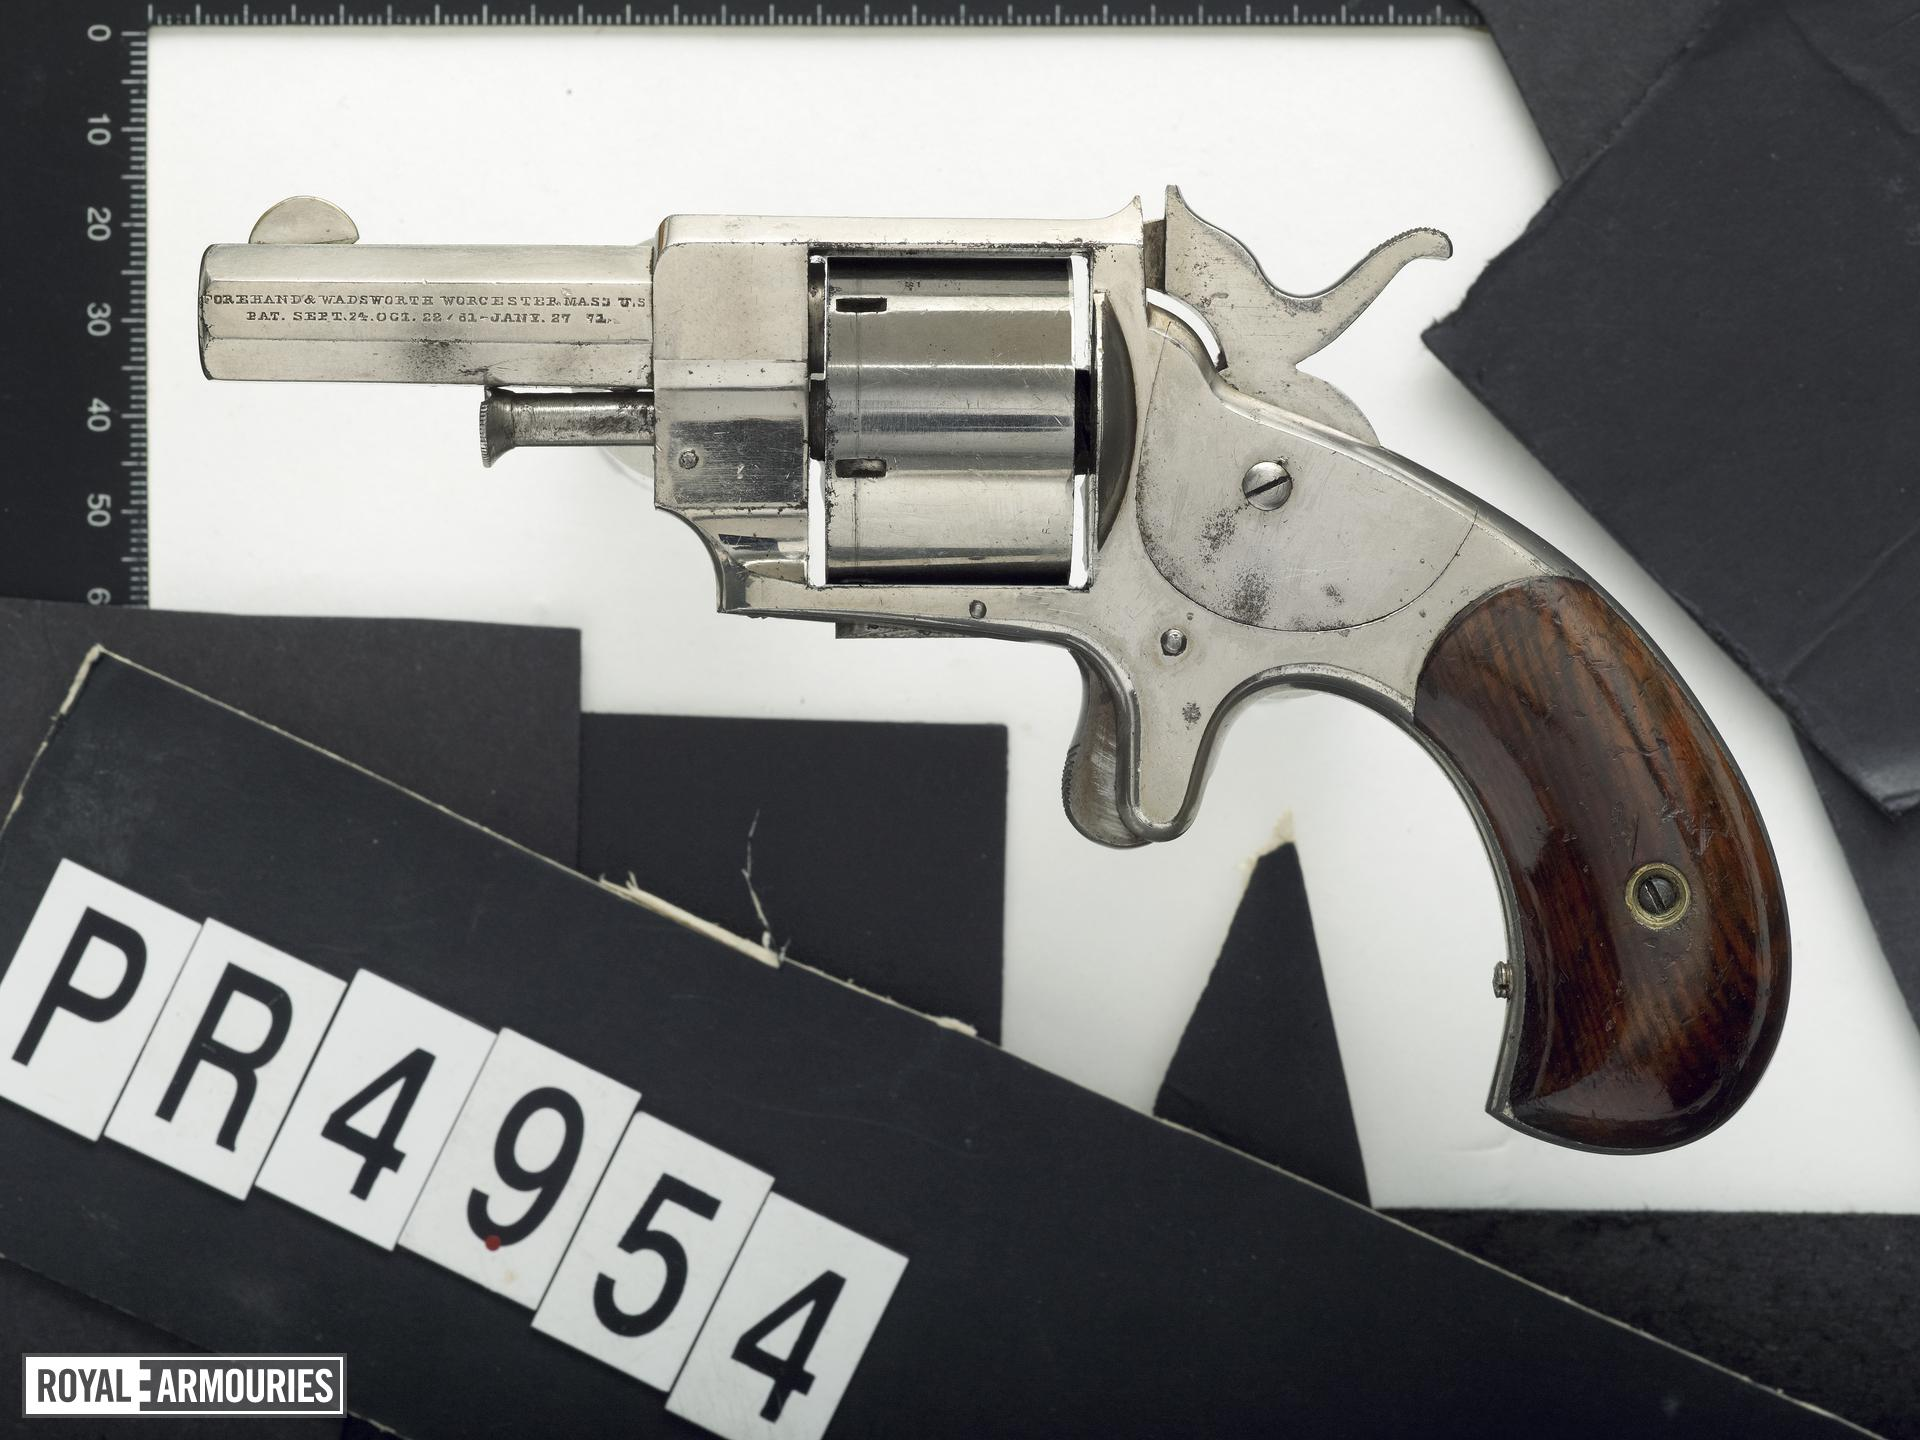 Rimfire six-shot revolver - Forehand and Wadsworth Terror